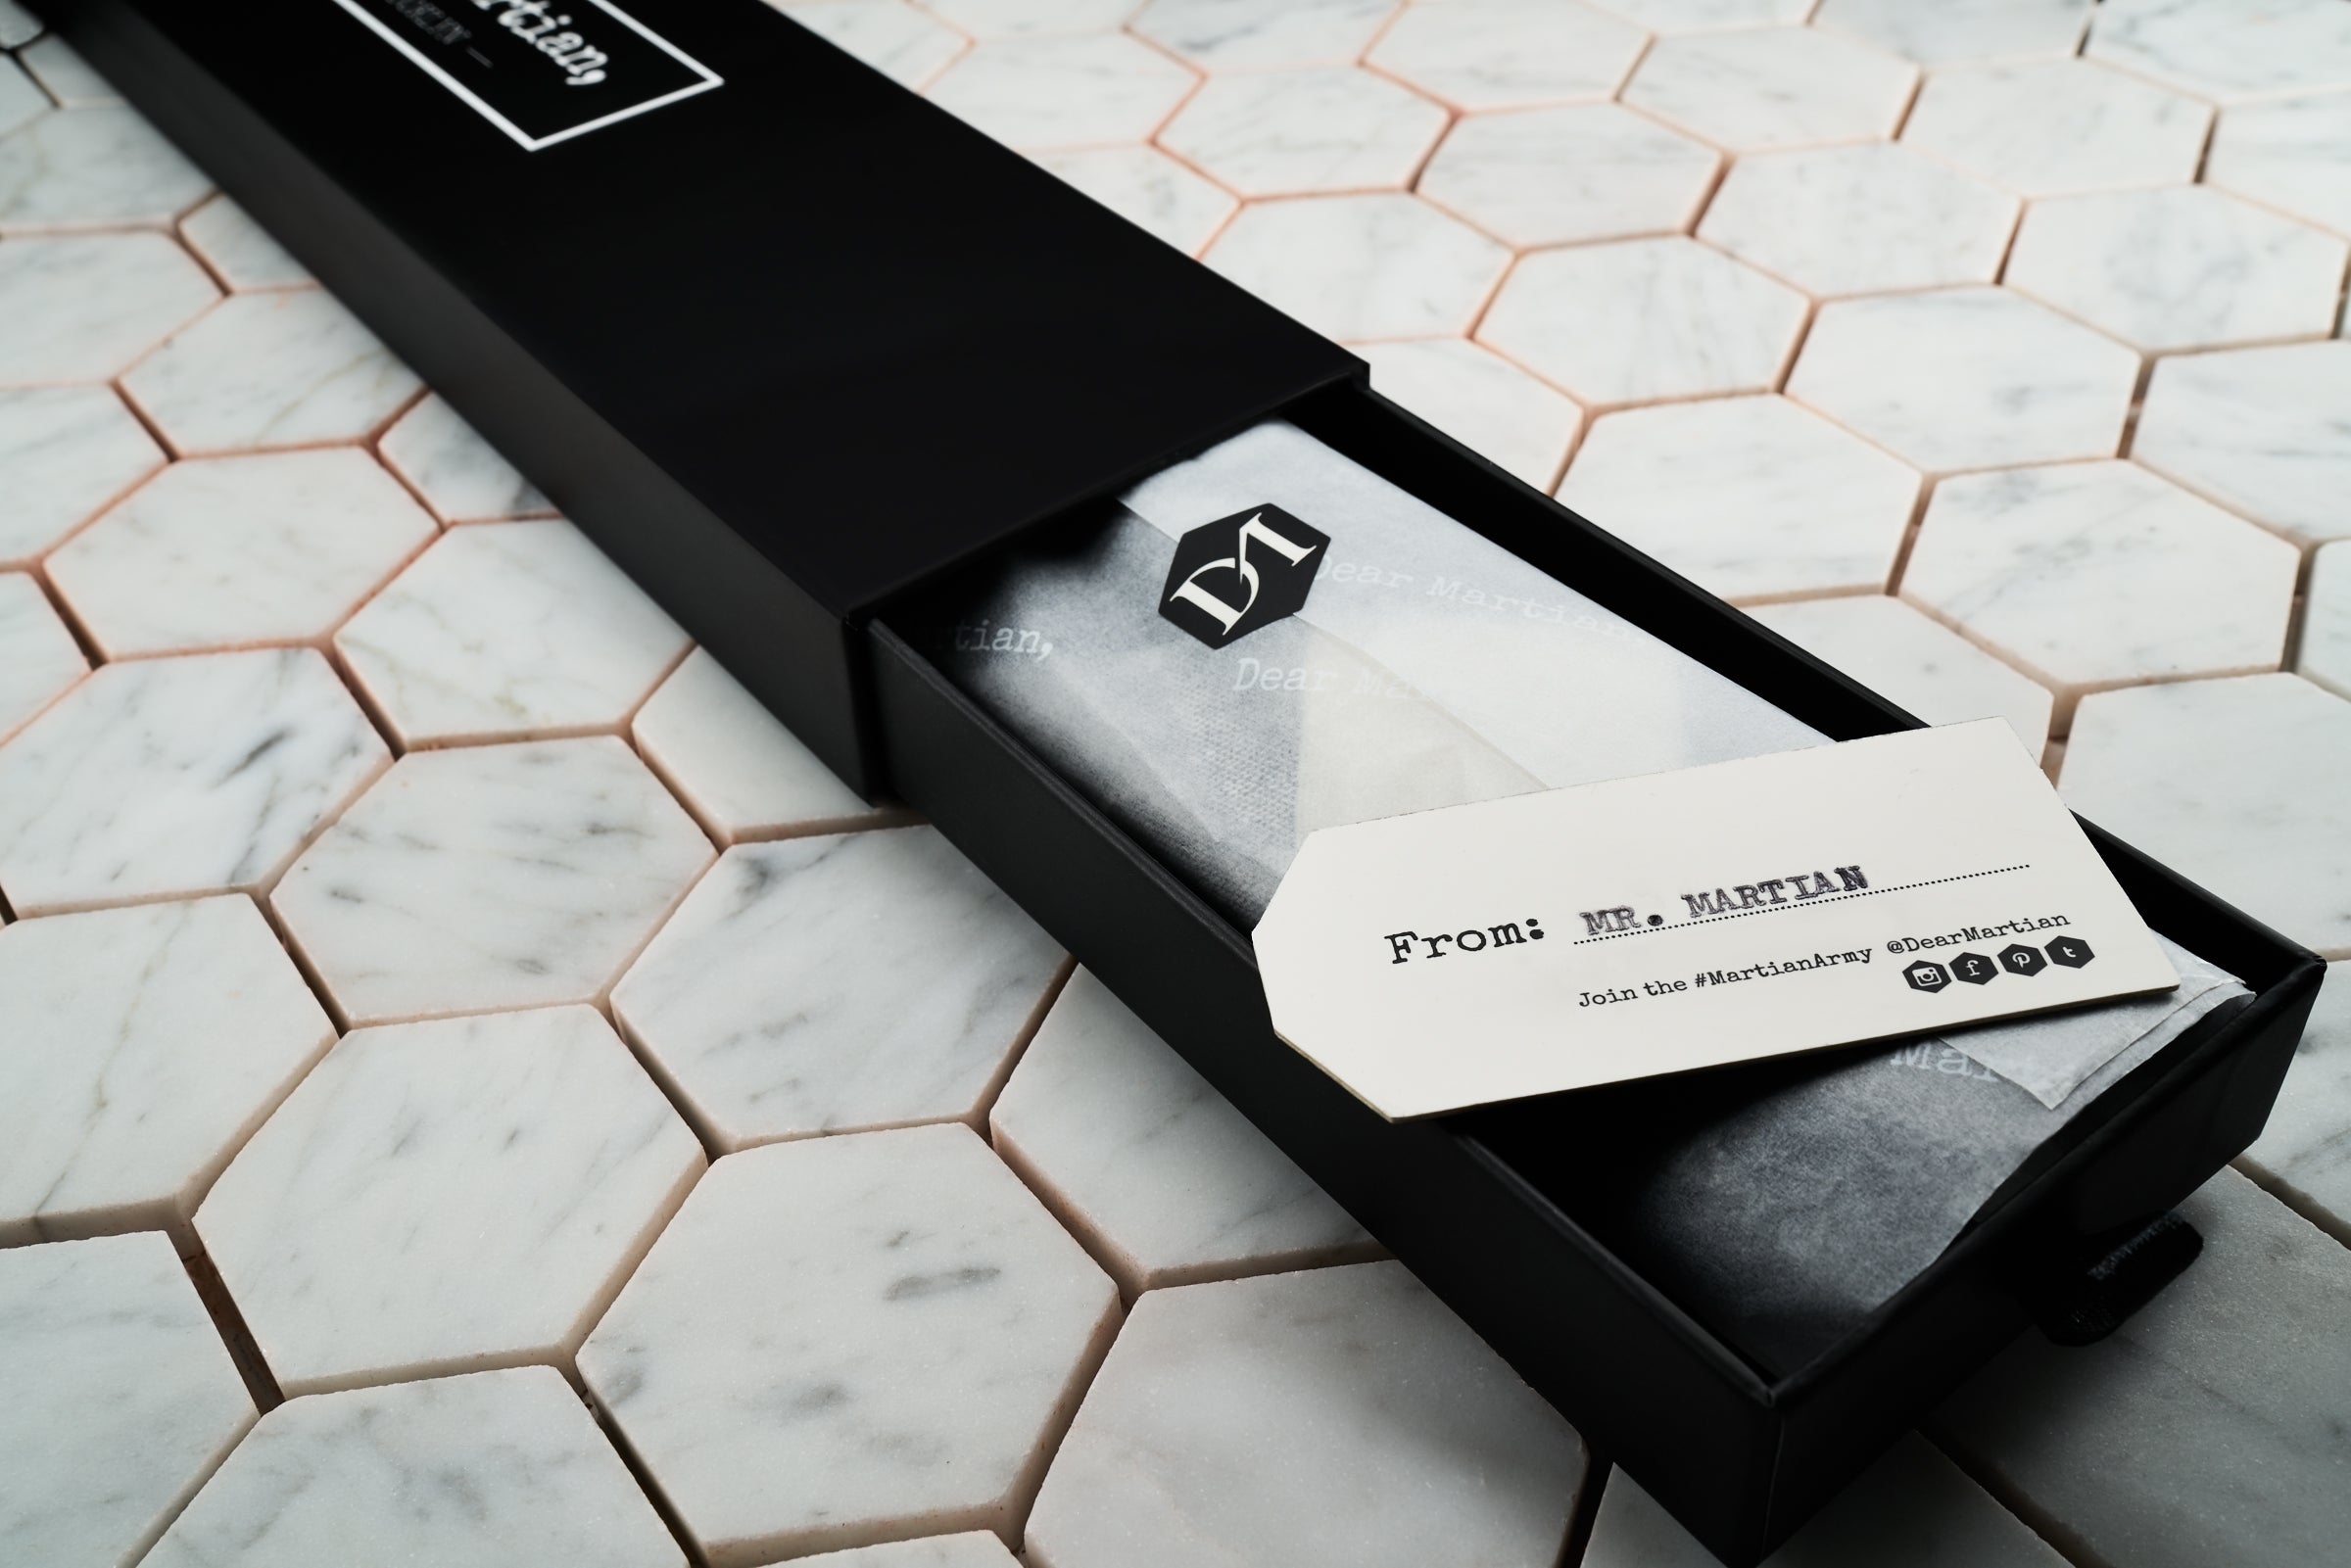 An image of Dear Martian, pull-out style box which contains a black and white checkered tie wrapped in DM gift wrapping. The wrapping is sealed with a DM hexagonal logo and in addition contains a personalized hang tag label with the Martian's name.